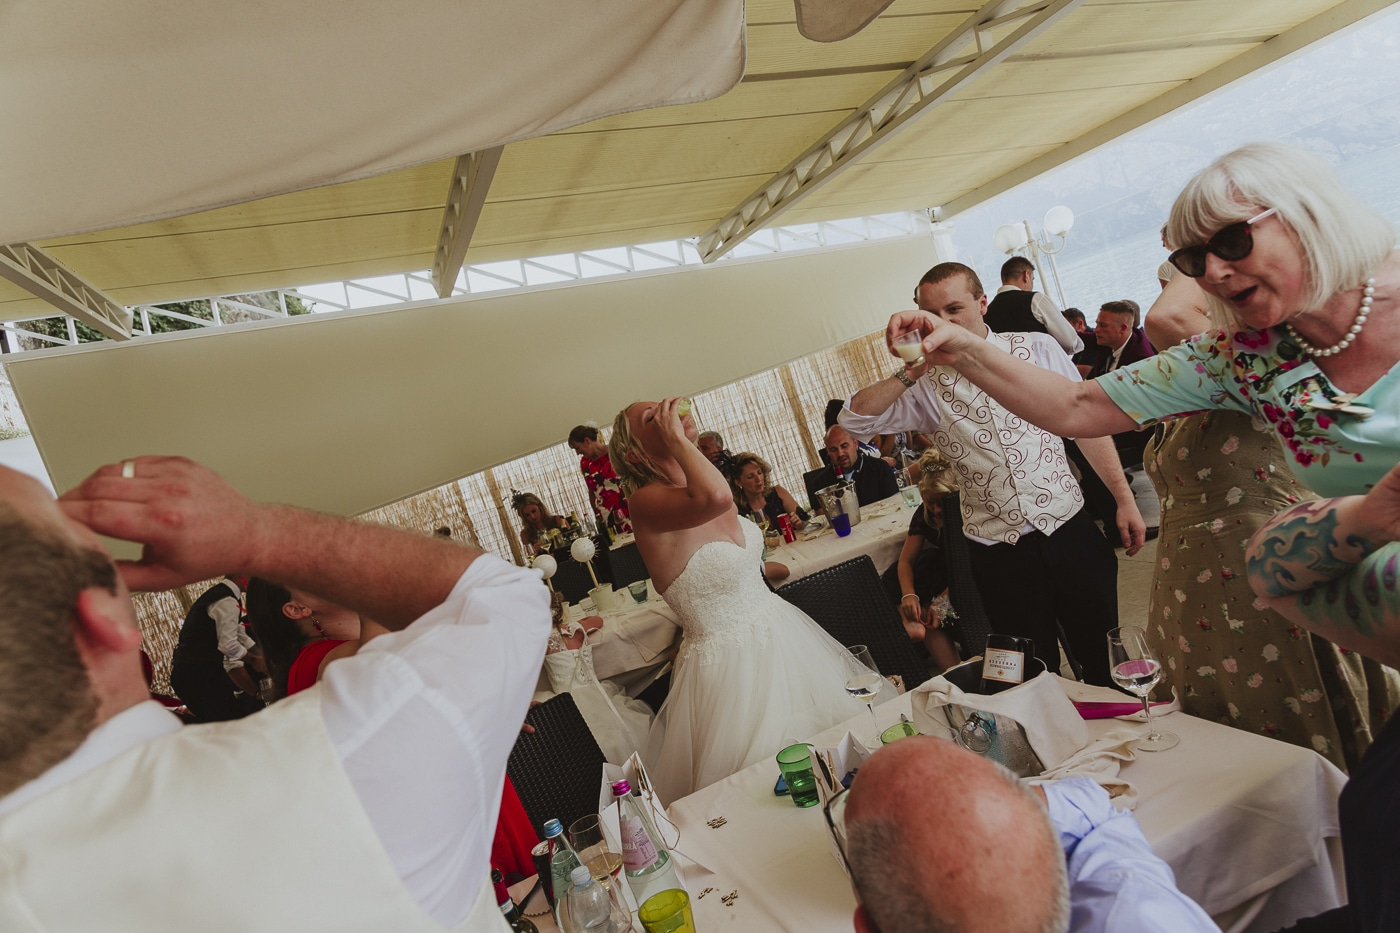 Bride, Groom and family drinking shots of alcohol amid their wedding reception by Joshua Wyborn